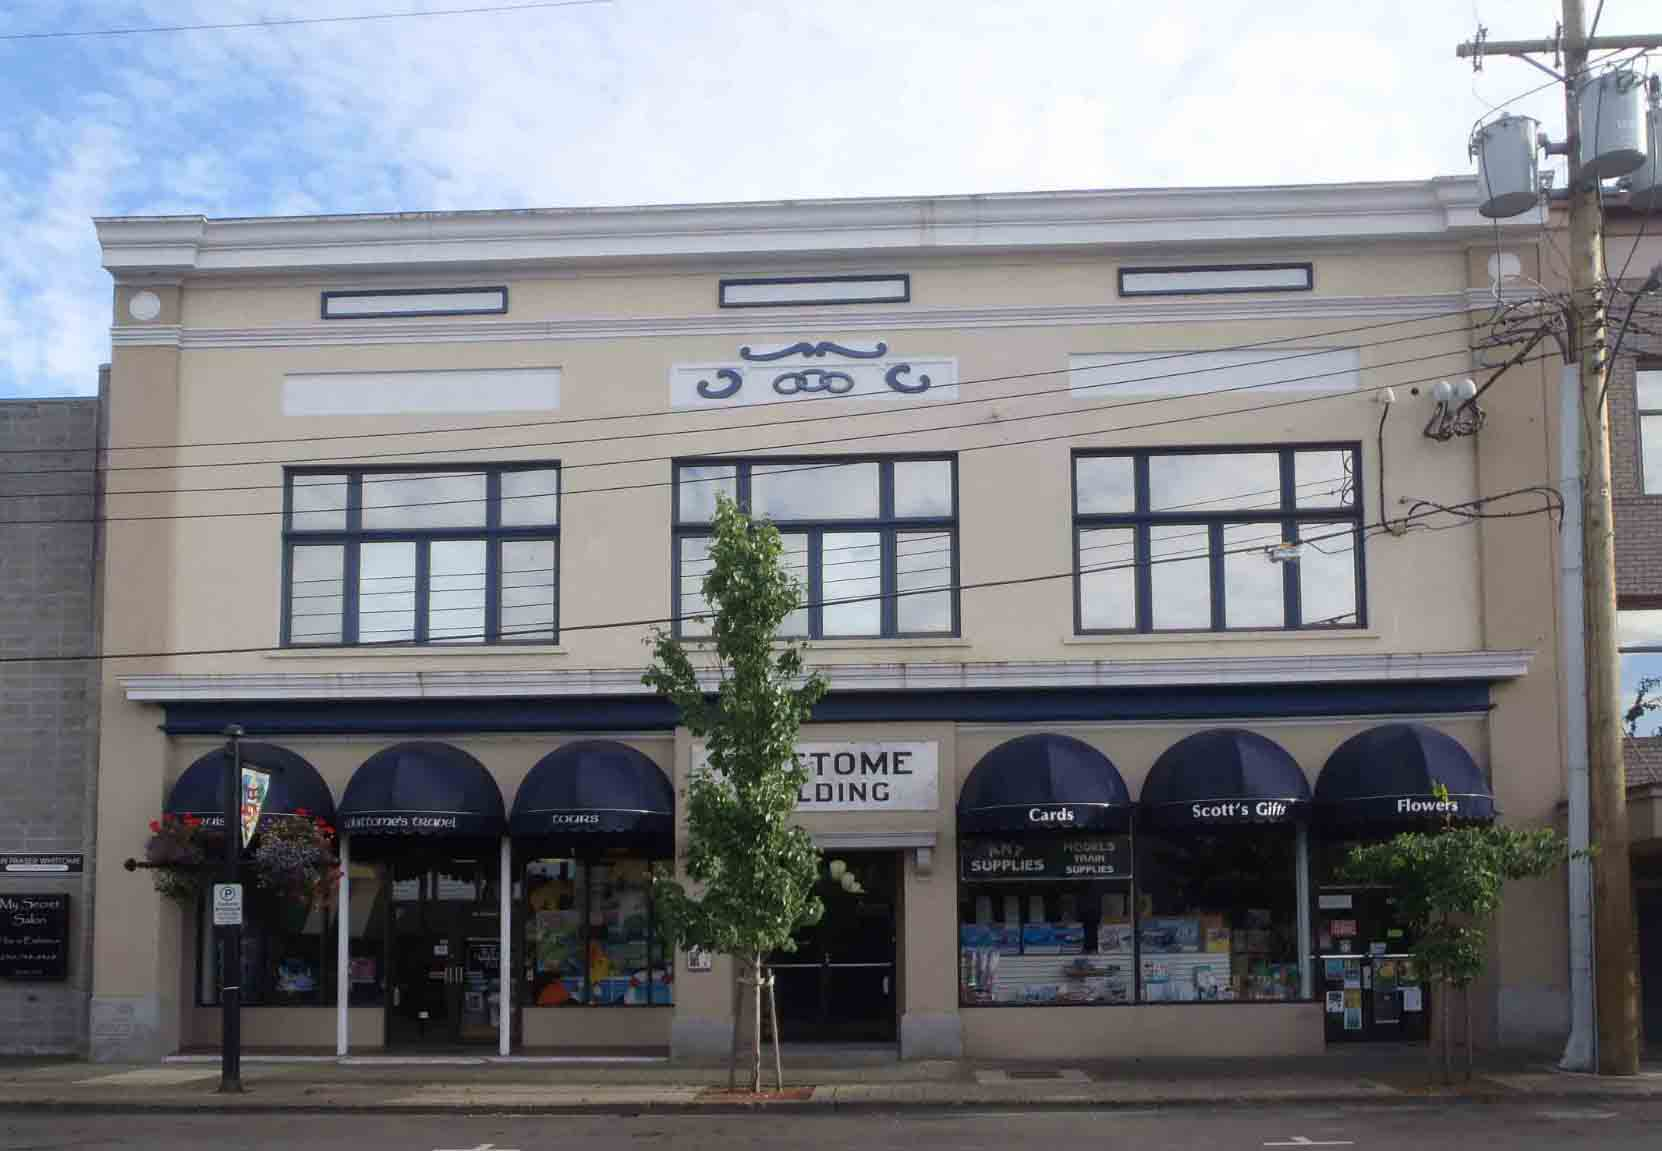 Whittome Building, Station Street, Duncan, B.C.